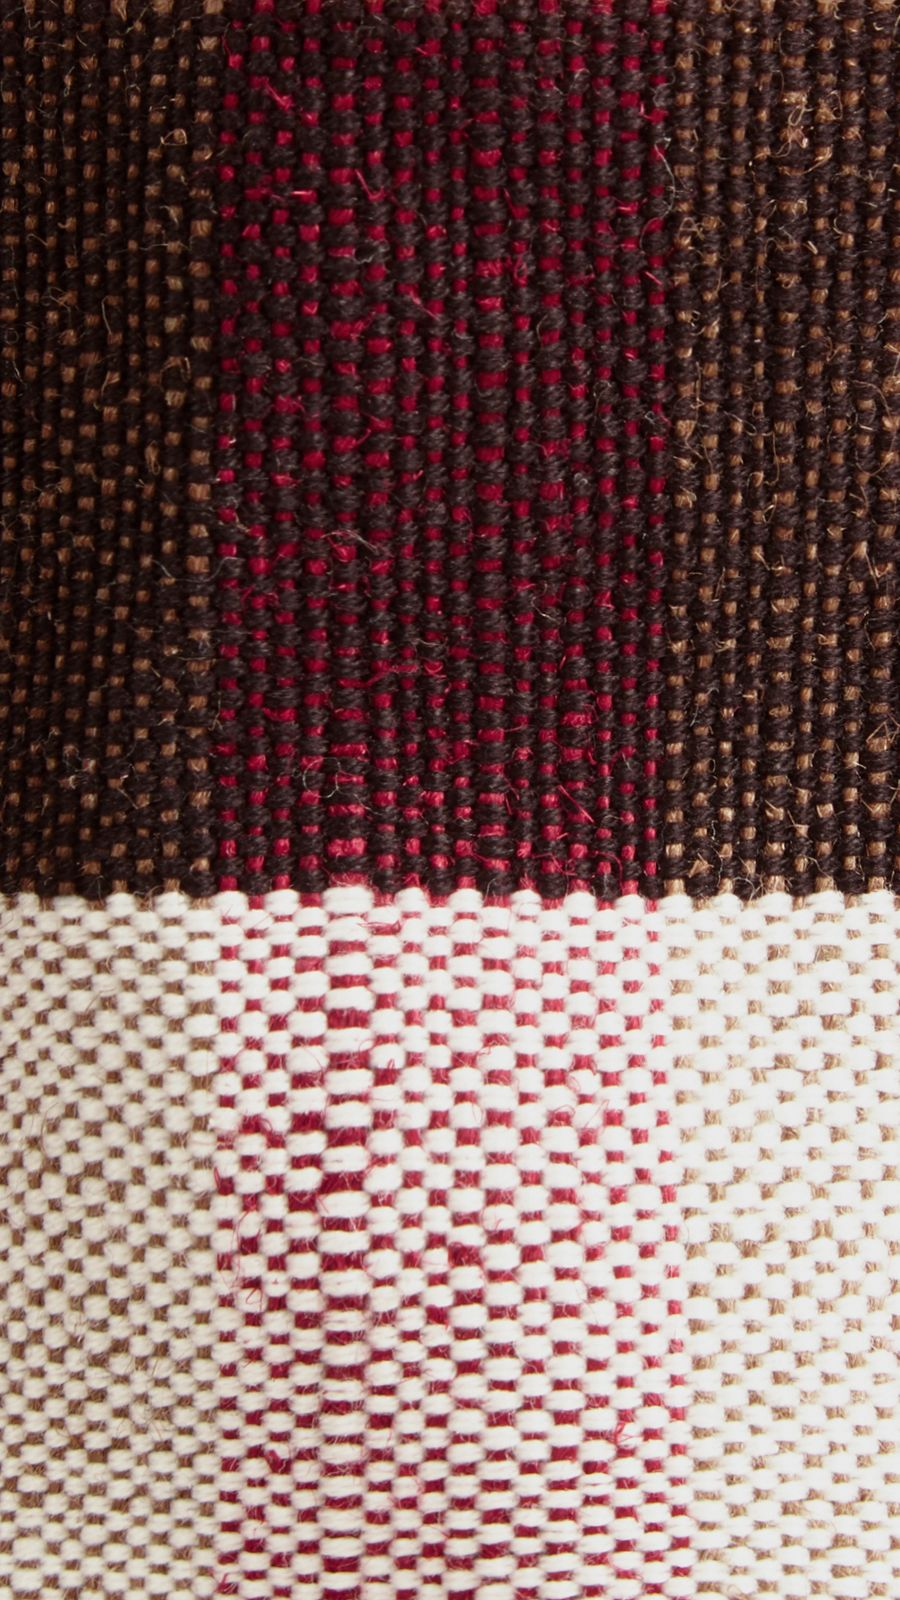 Cadmium red The Medium Ashby in Canvas Check and Leather Cadmium Red - Image 2